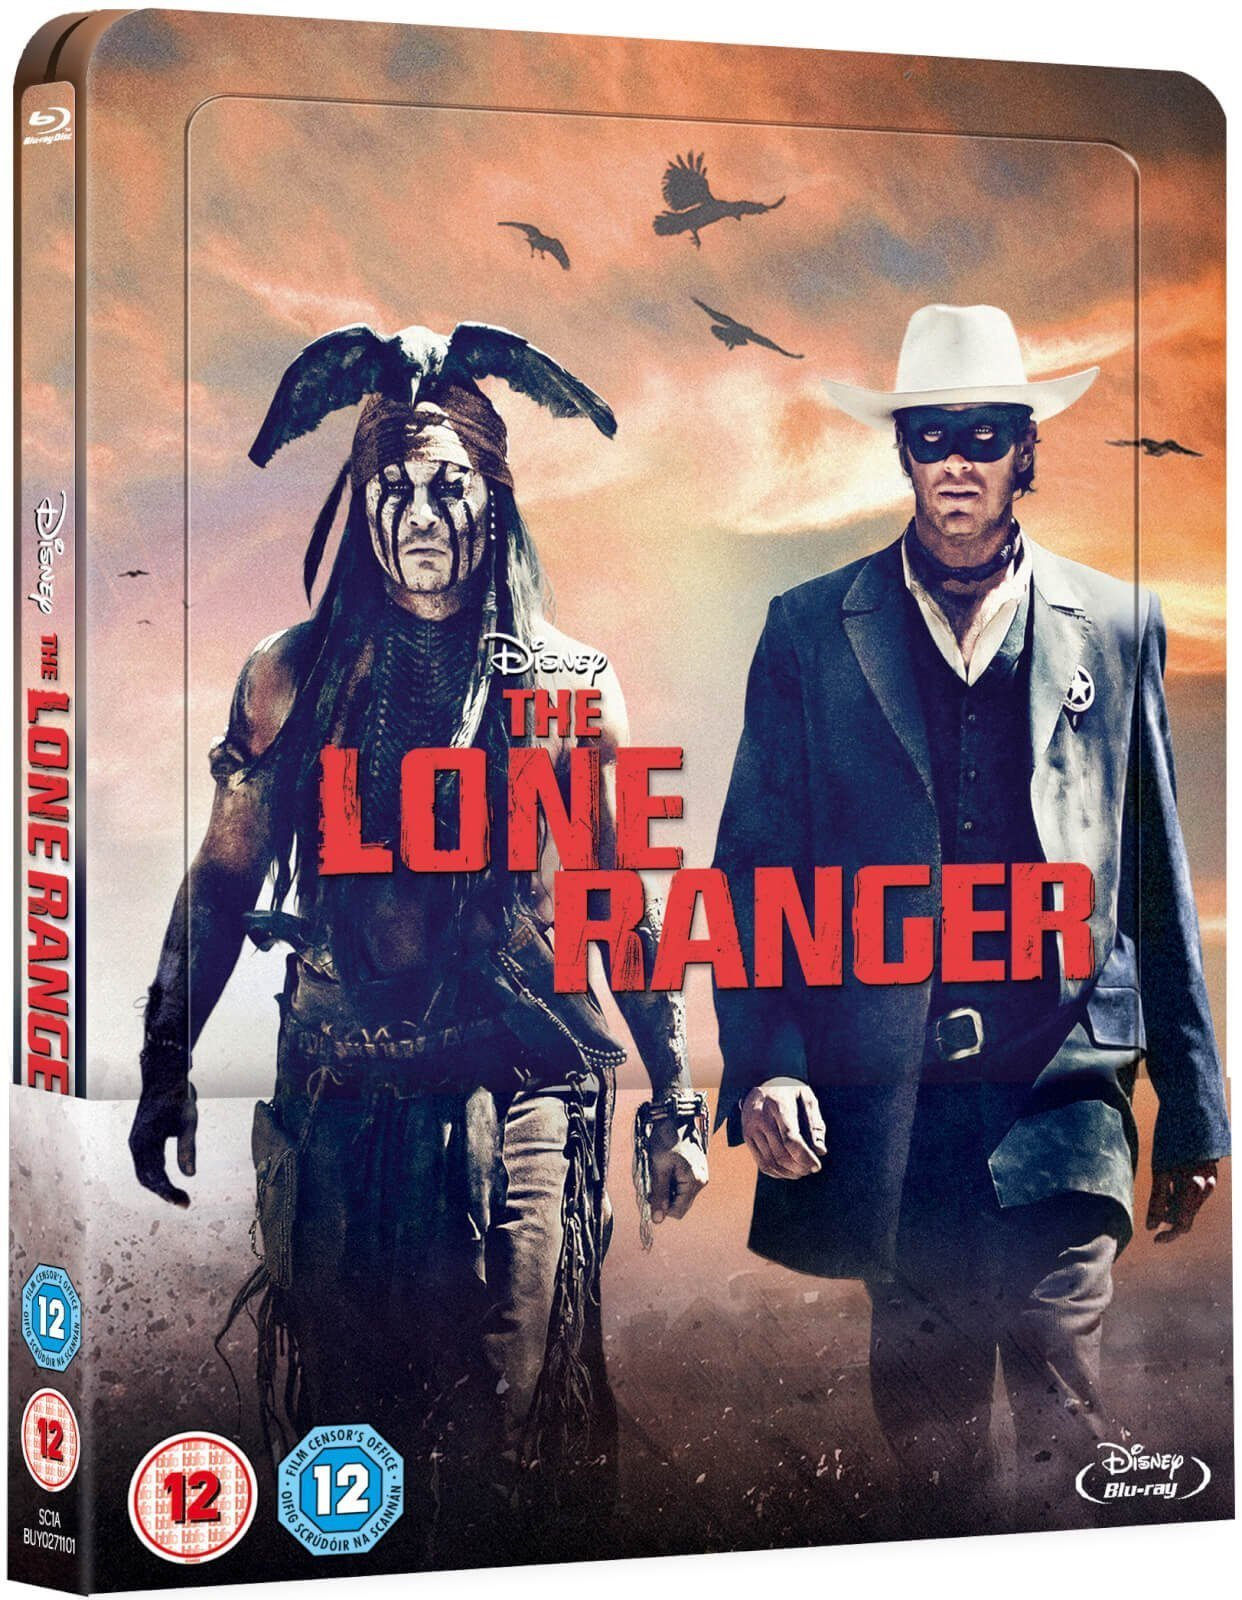 The Lone Ranger (STEELBOOK Limited) JOHNNY DEPP